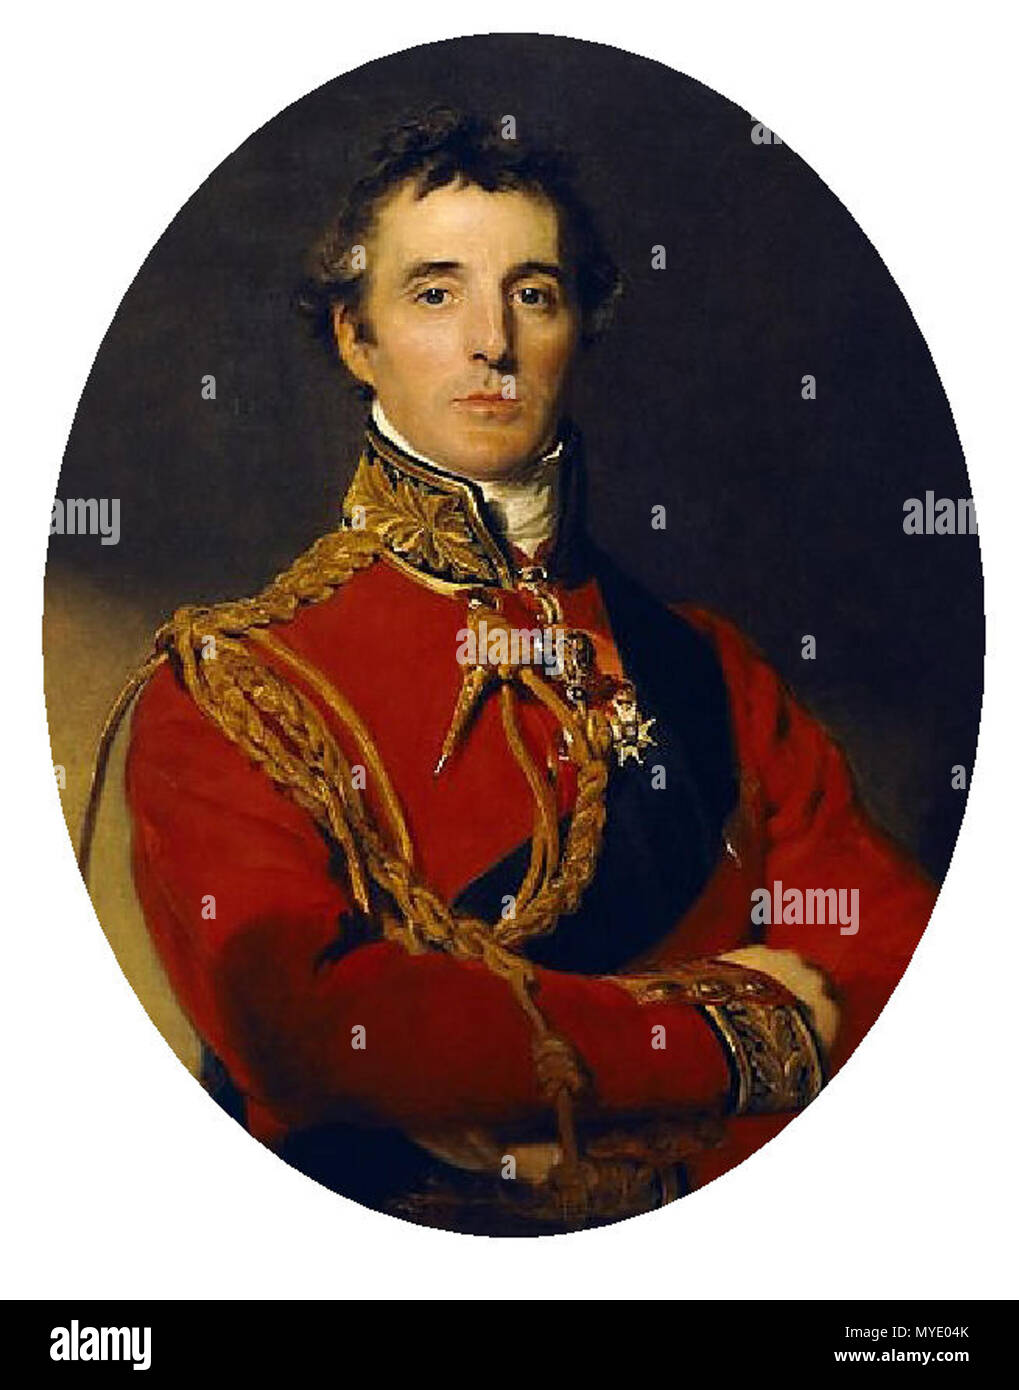 . English: Portrait . 31 January 2012. Lawrence 1815 180 First Duke of Wellington detail of a portrait - Stock Image